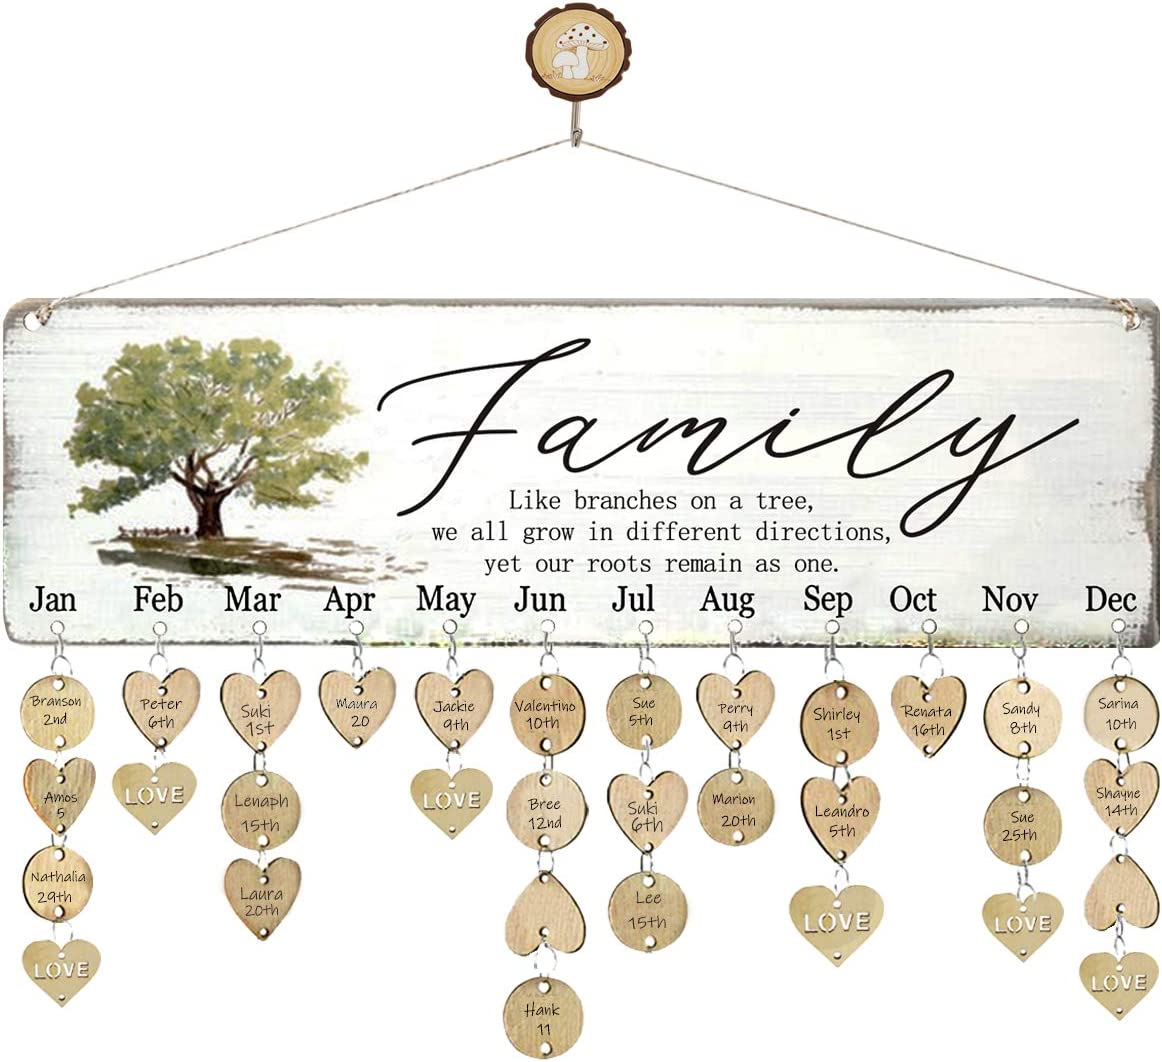 WISIEW Gifts for Grandma Family Birthday Tracker Calendar Board with 110 Wood Tags Important Dates Reminder Plaque Home Decor Wall Hanging for Birthday Christmas Thanksgiving Presents